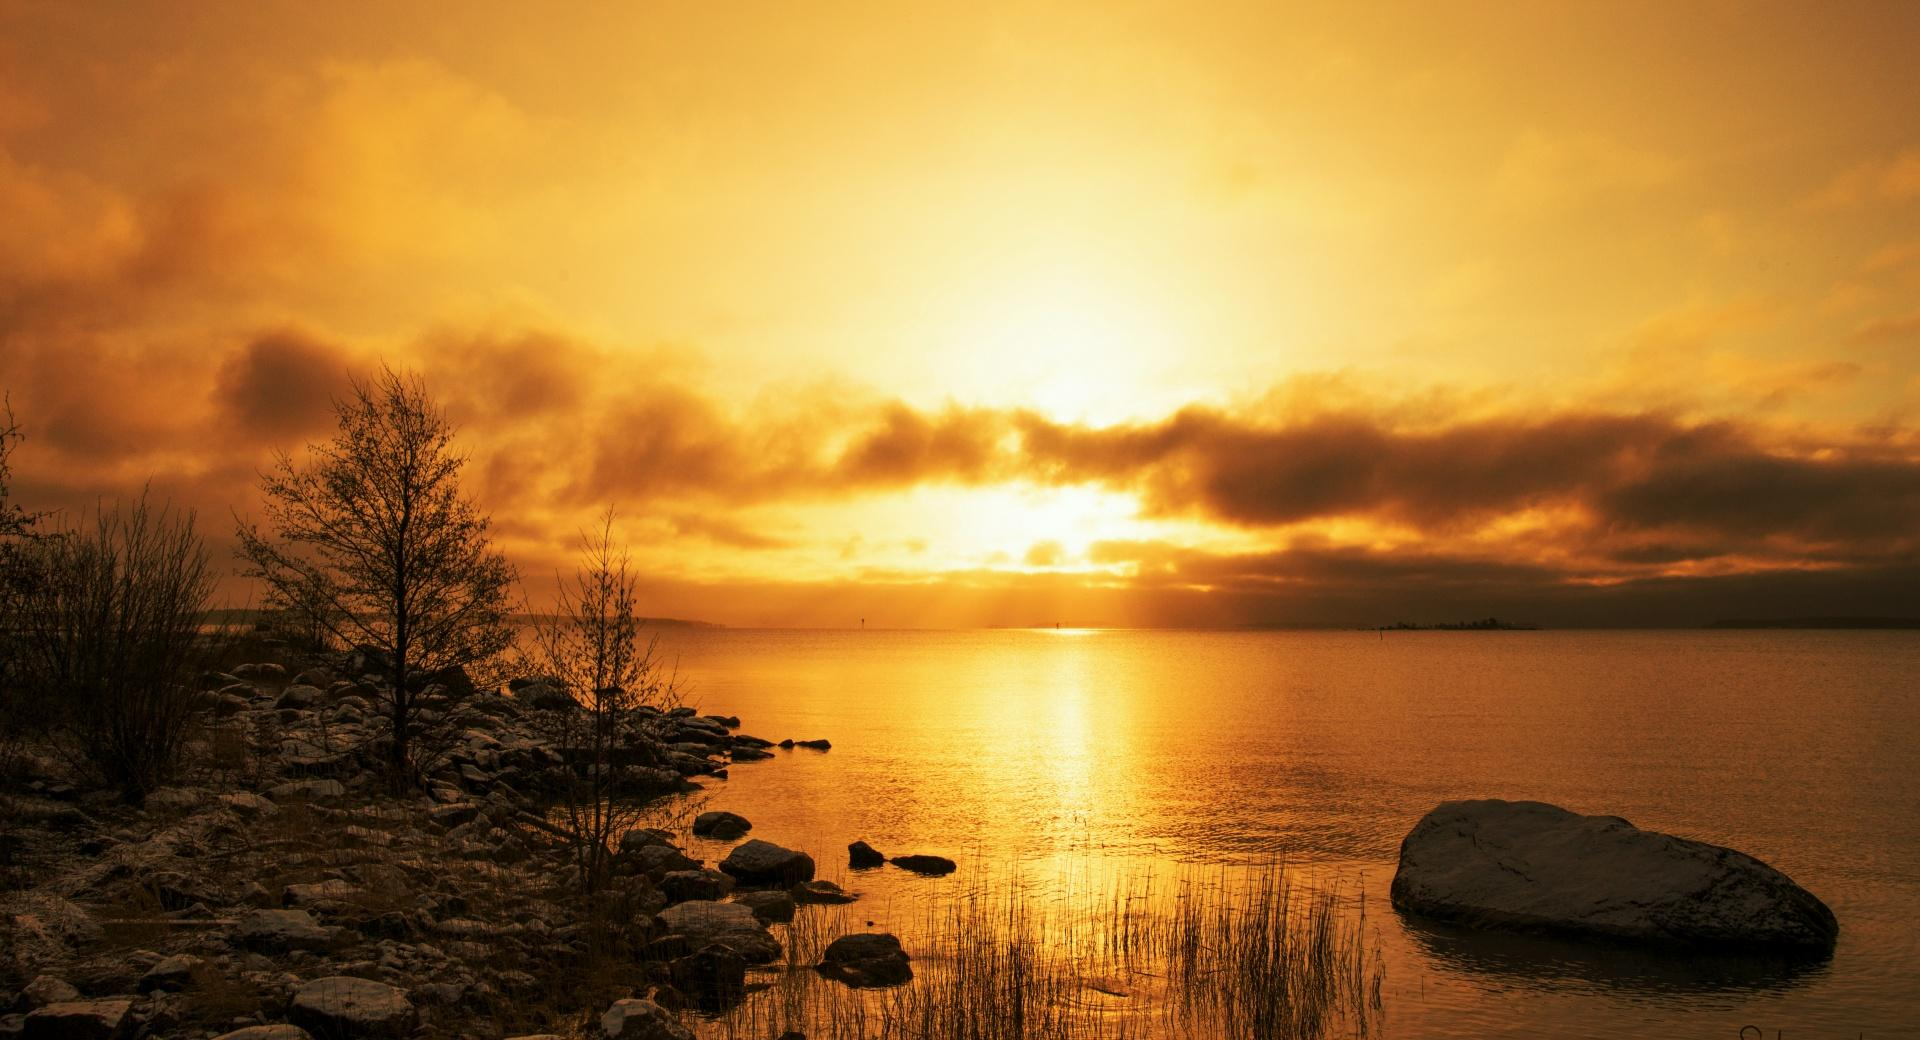 Golden Morning wallpapers HD quality